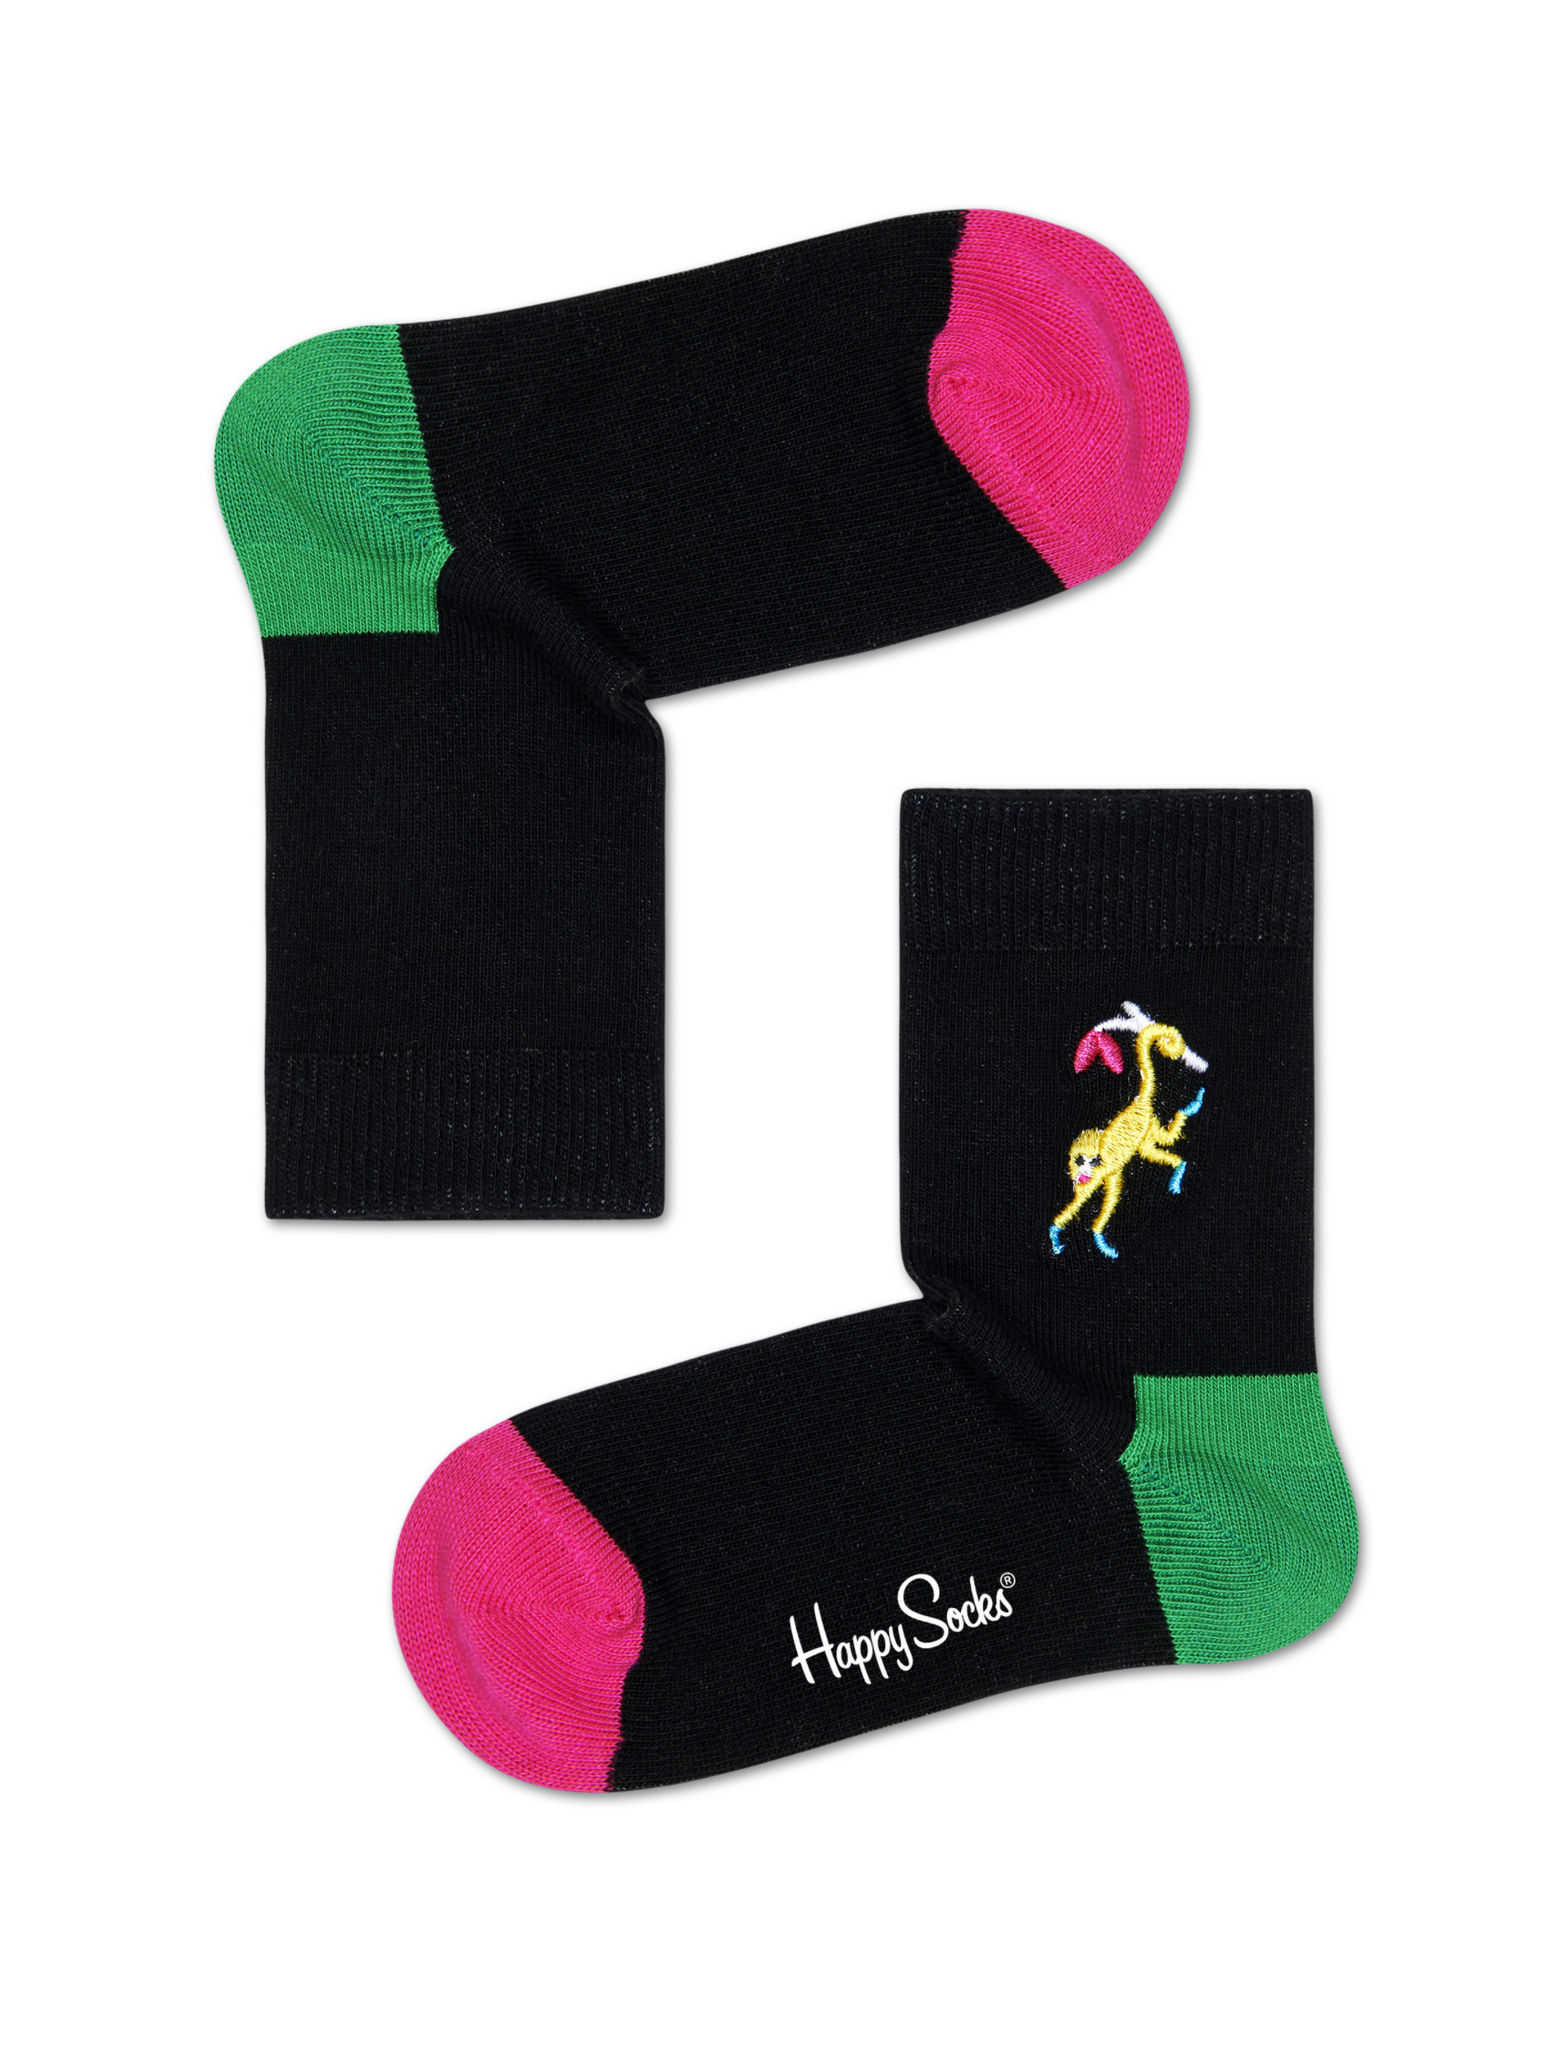 Monkey Embroidery Socks